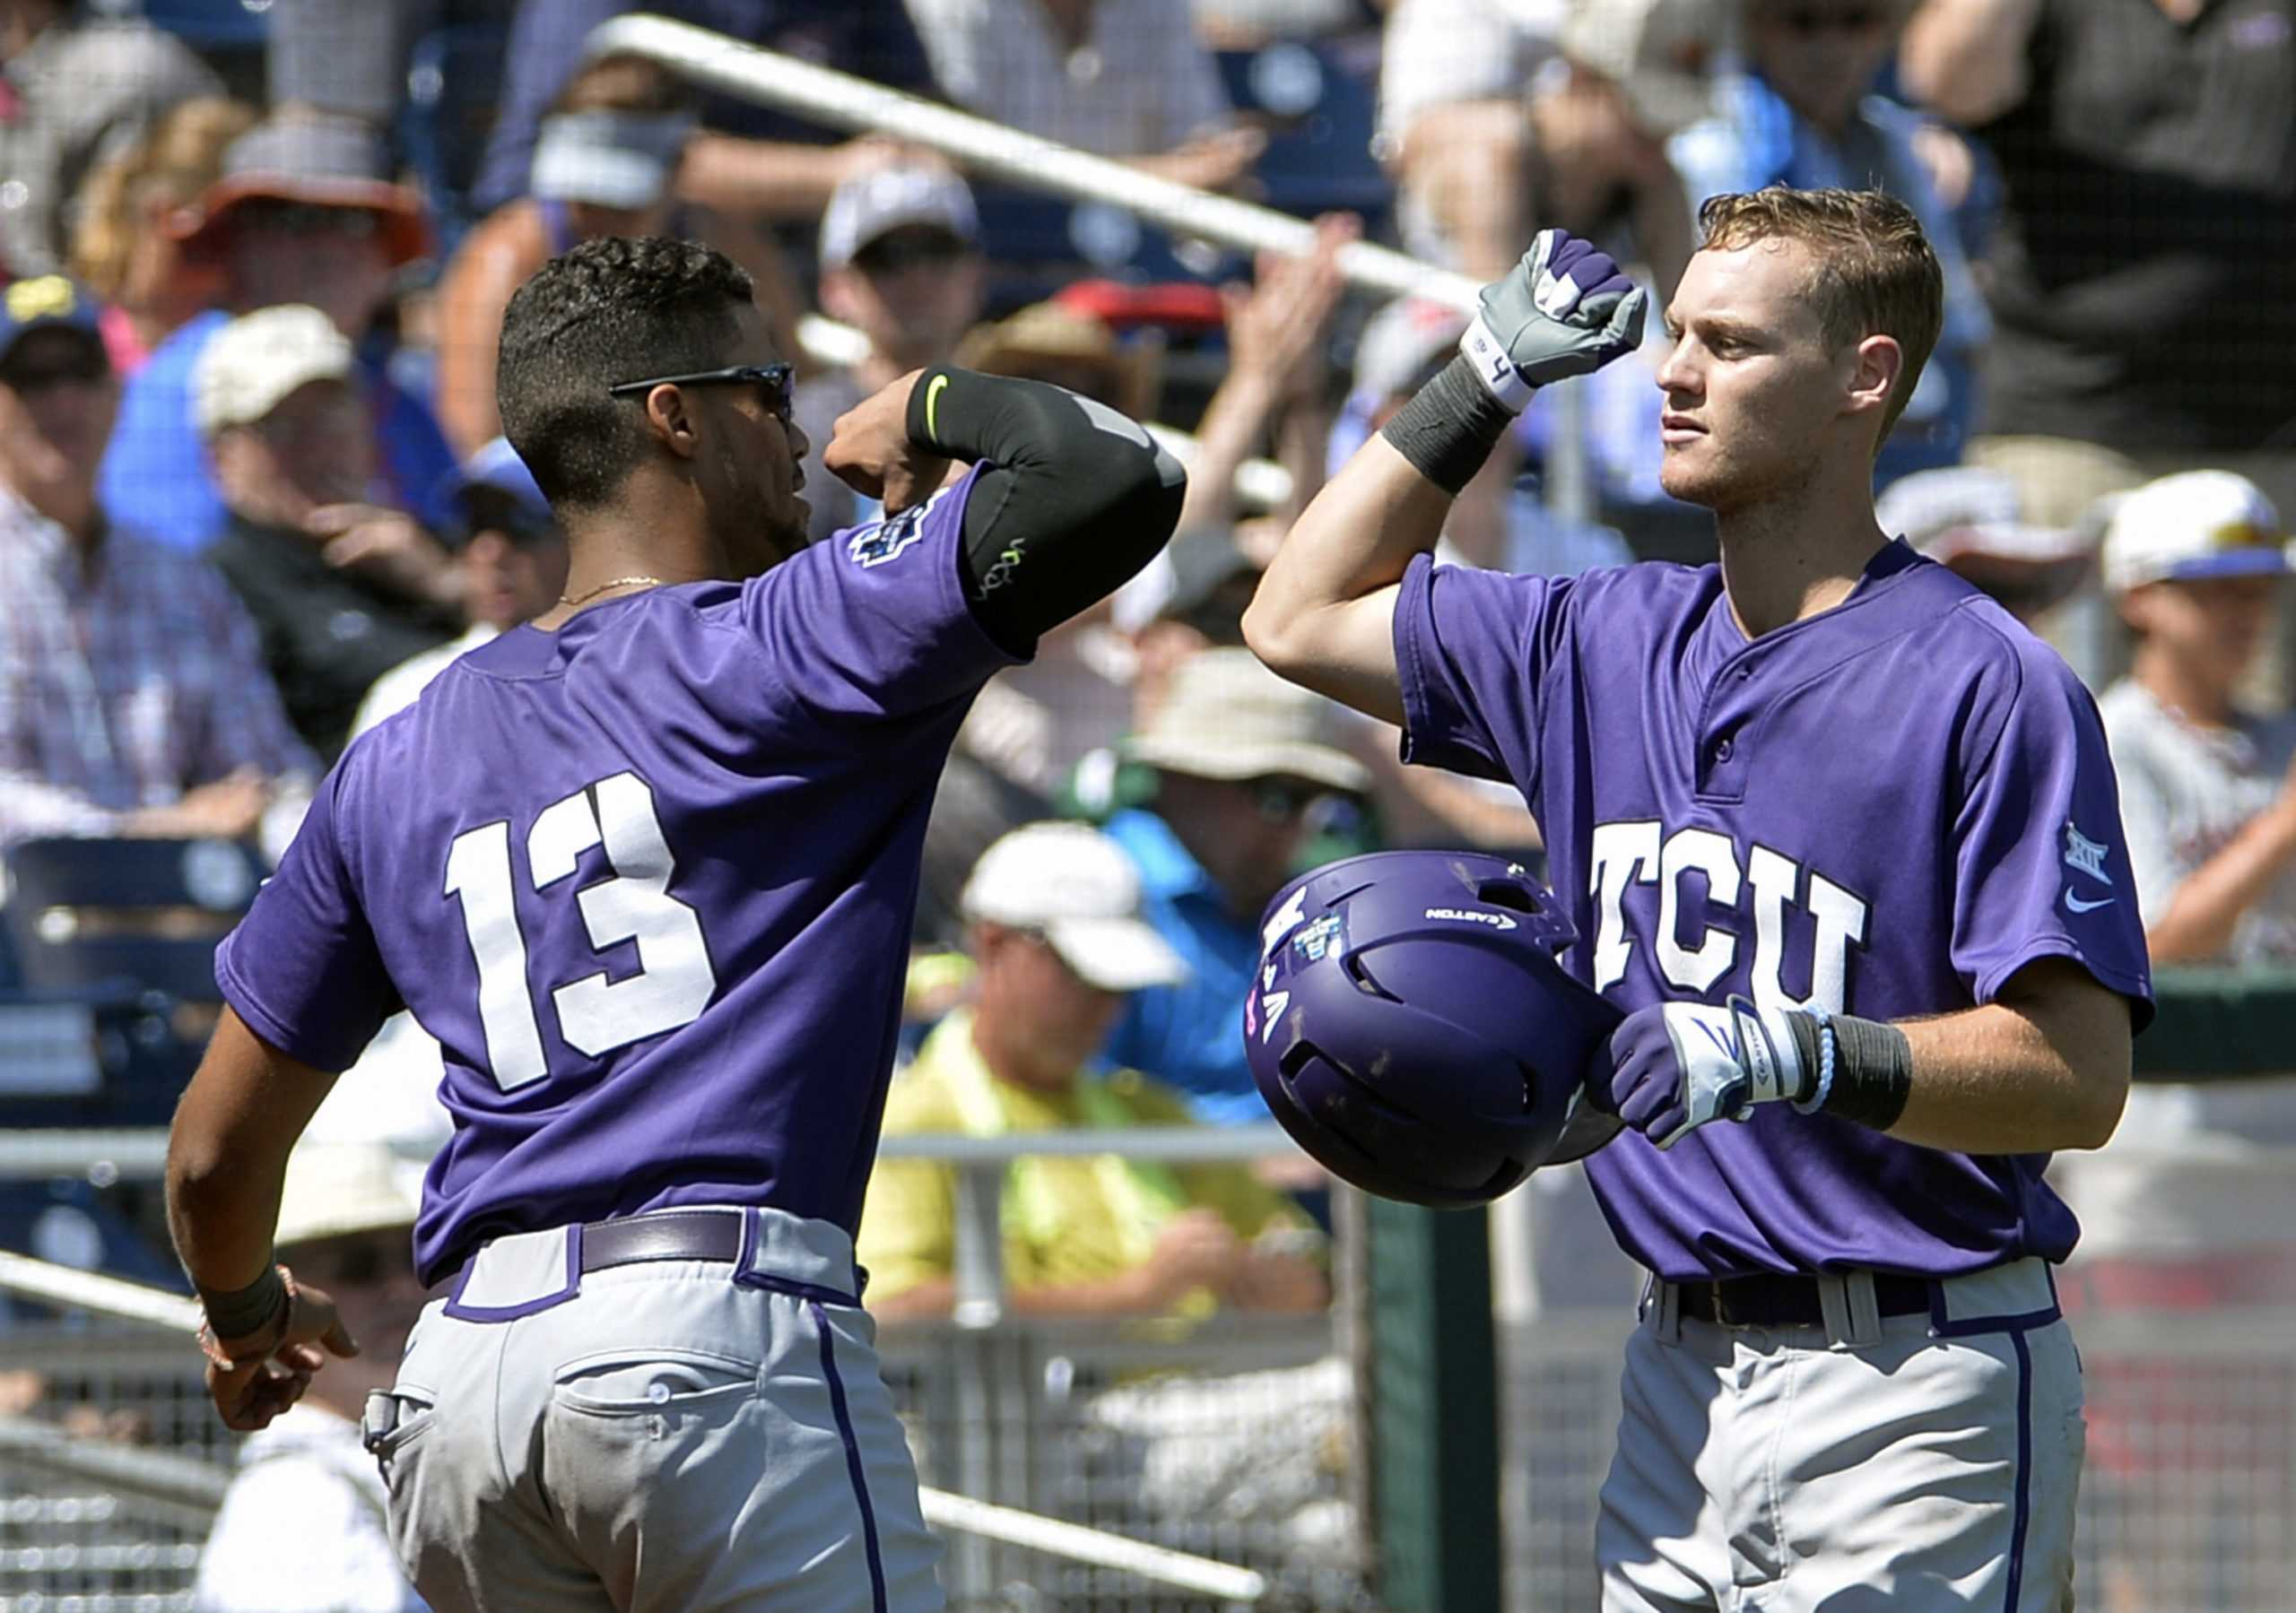 TCU extended its win streak to double digits Friday night against Murray State.